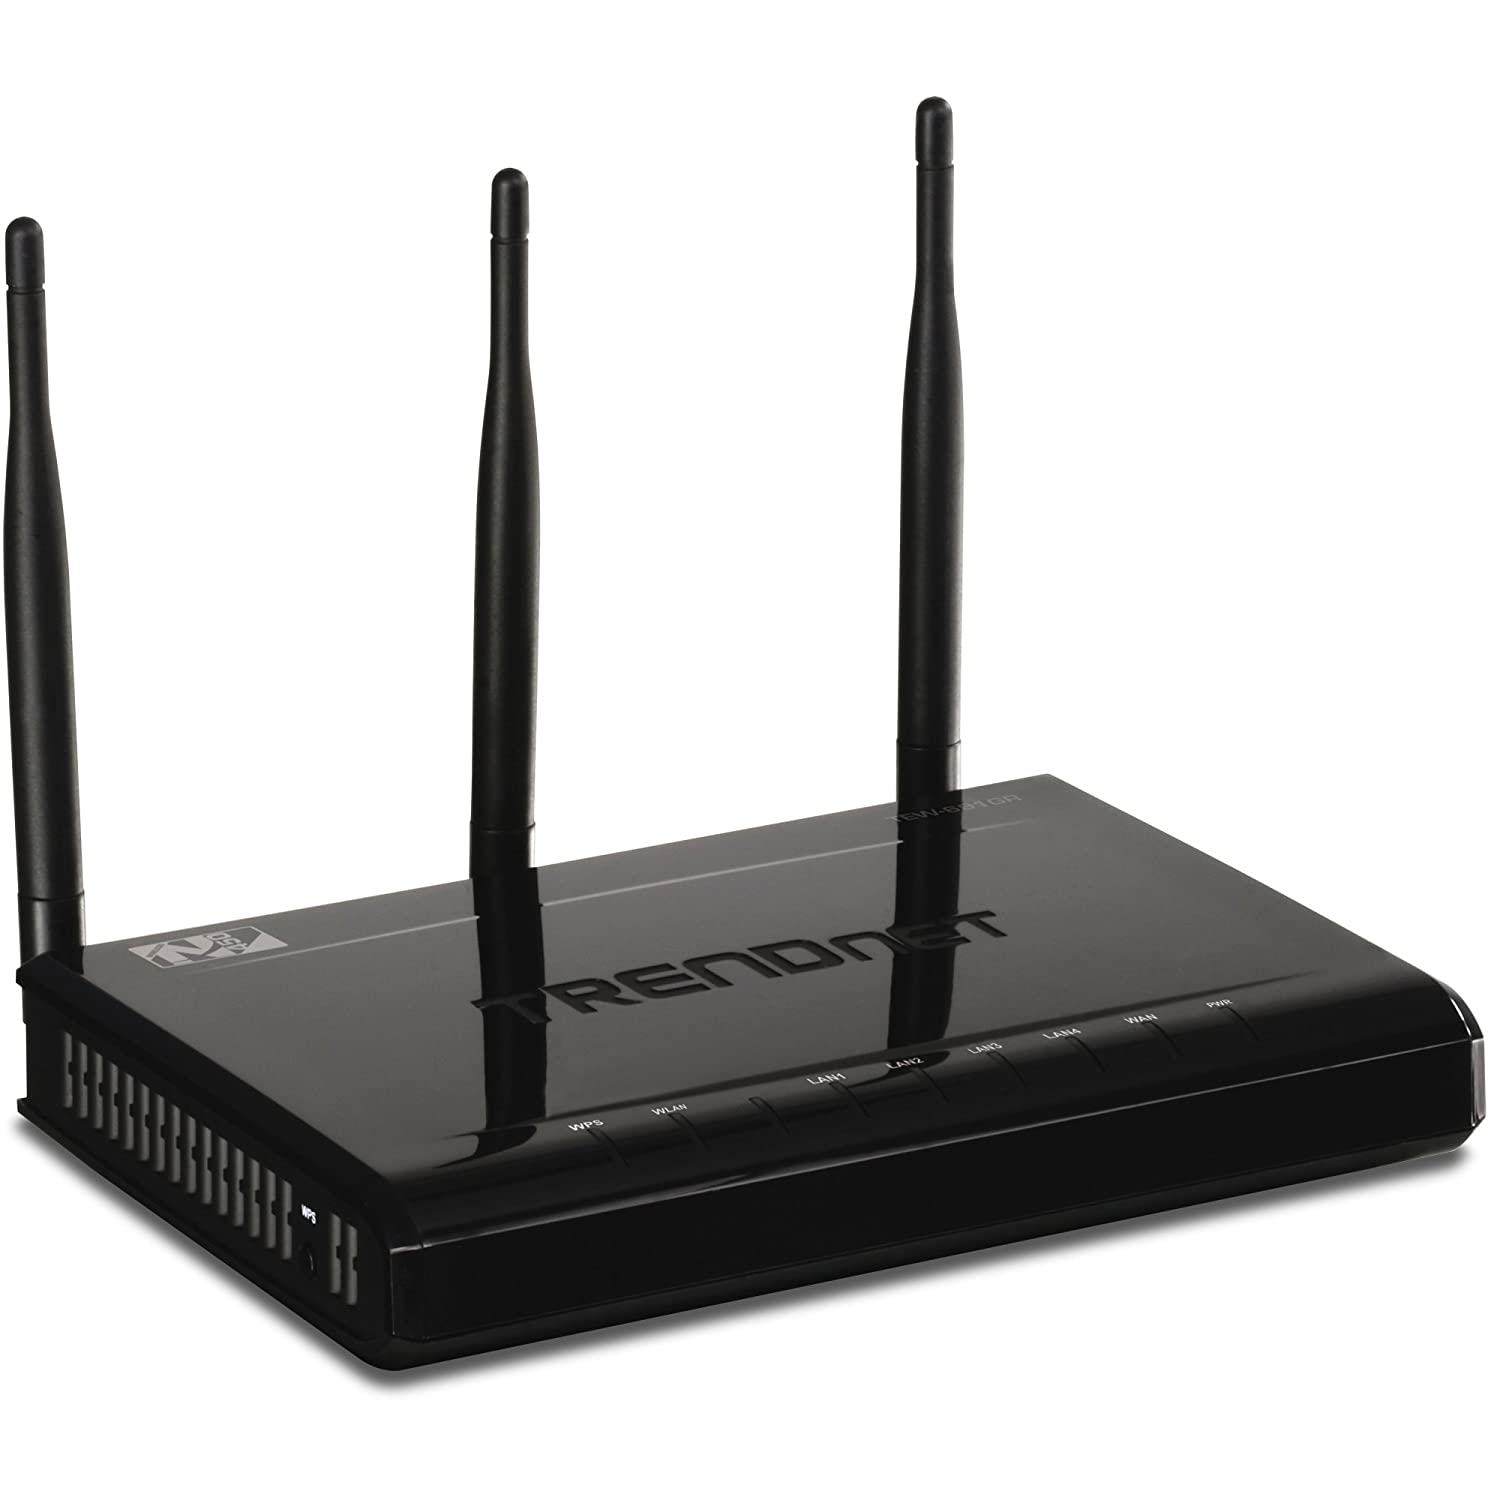 TRENDnet 450 Mbps Wireless N Gigabit Router TEW-691GR (Piano Black)